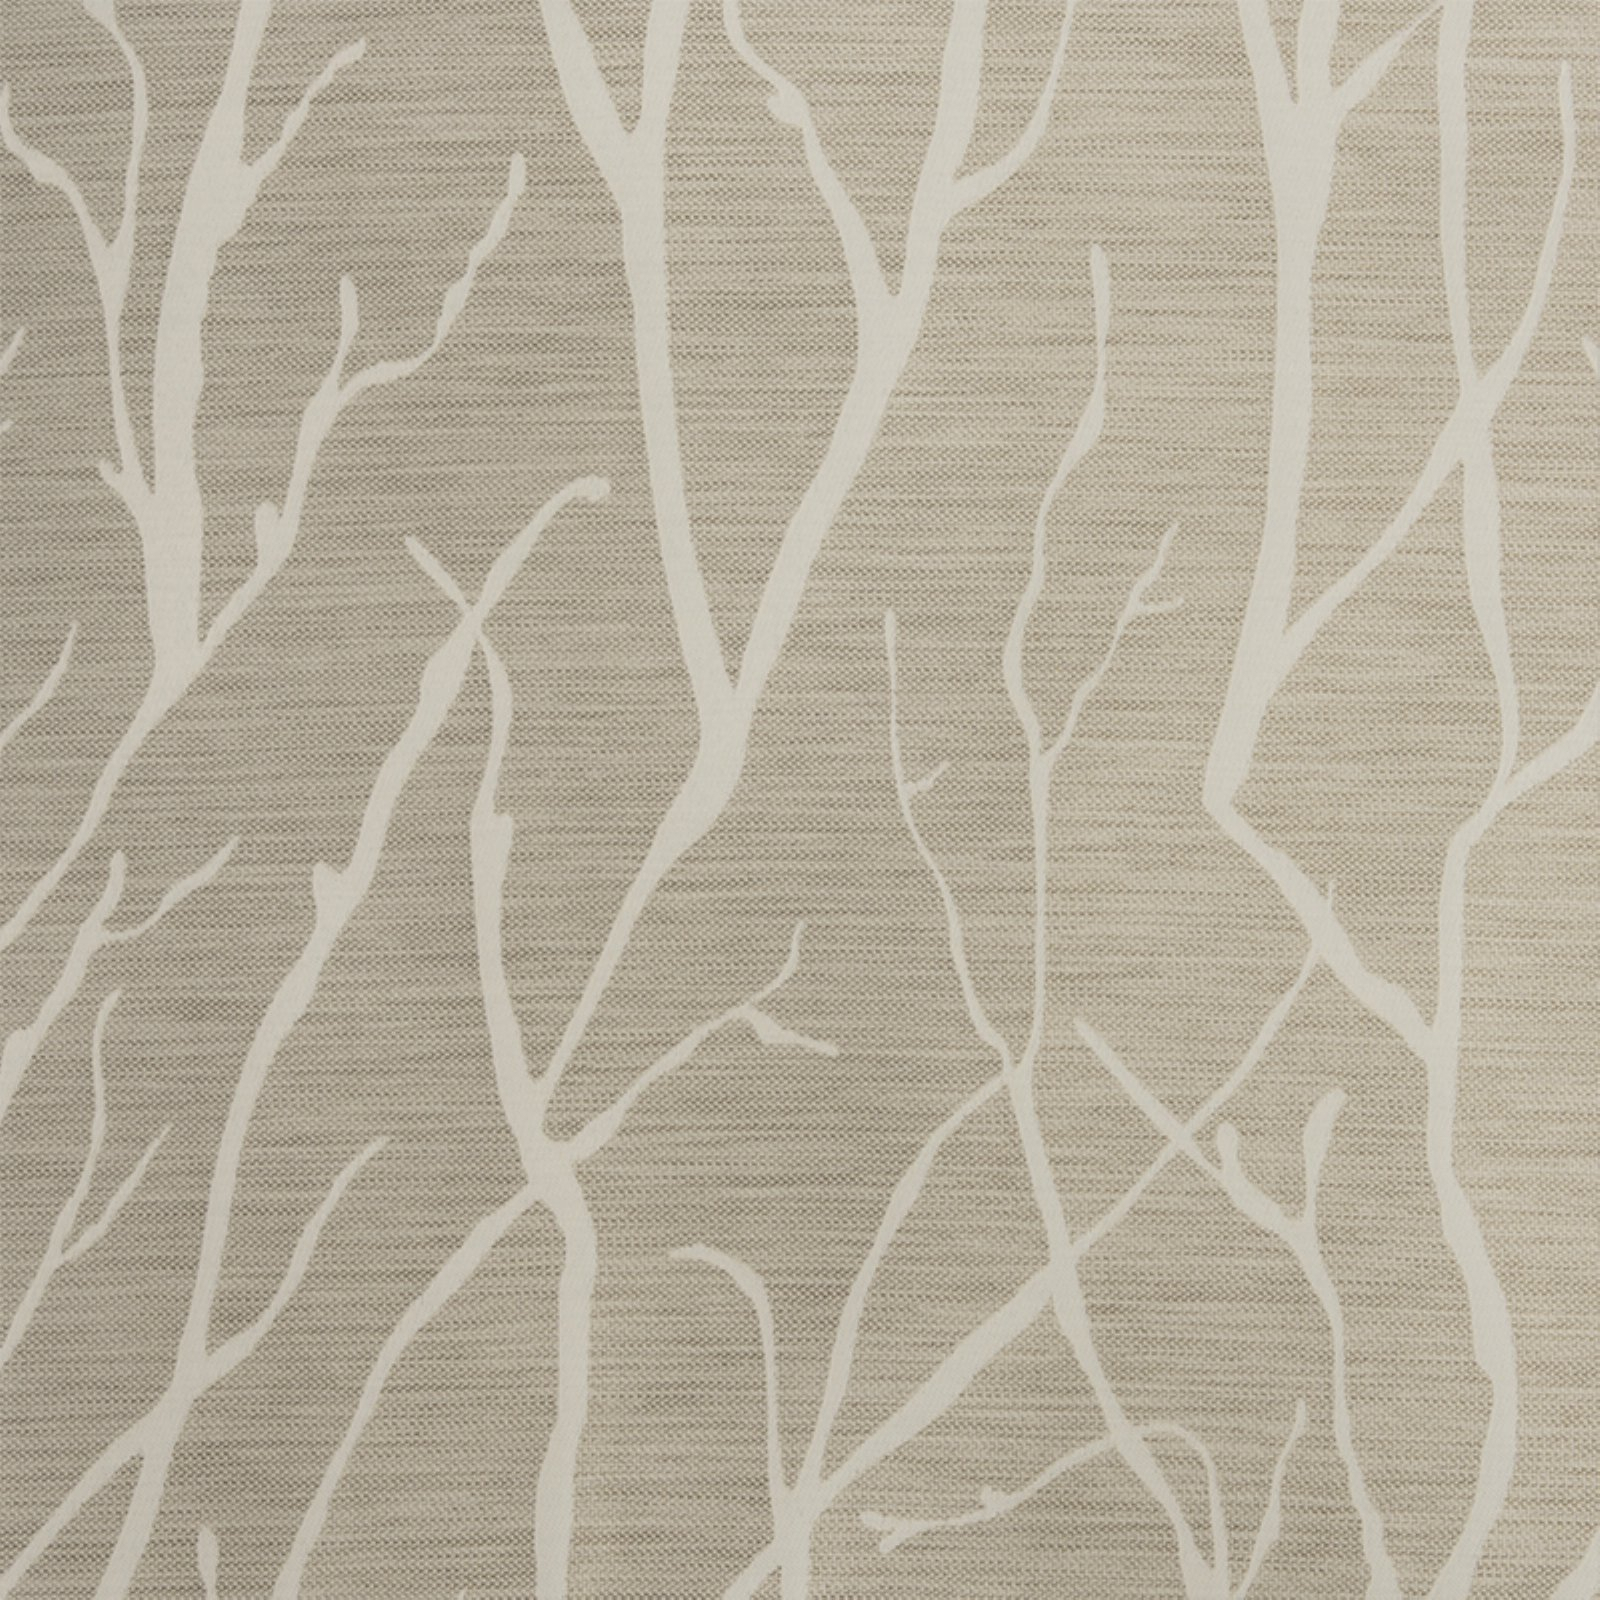 Exclusive Home Curtains 2 Pack Forest Hill Woven Blackout Grommet Top Curtain Panels Pertaining To Forest Hill Woven Blackout Grommet Top Curtain Panel Pairs (View 14 of 20)